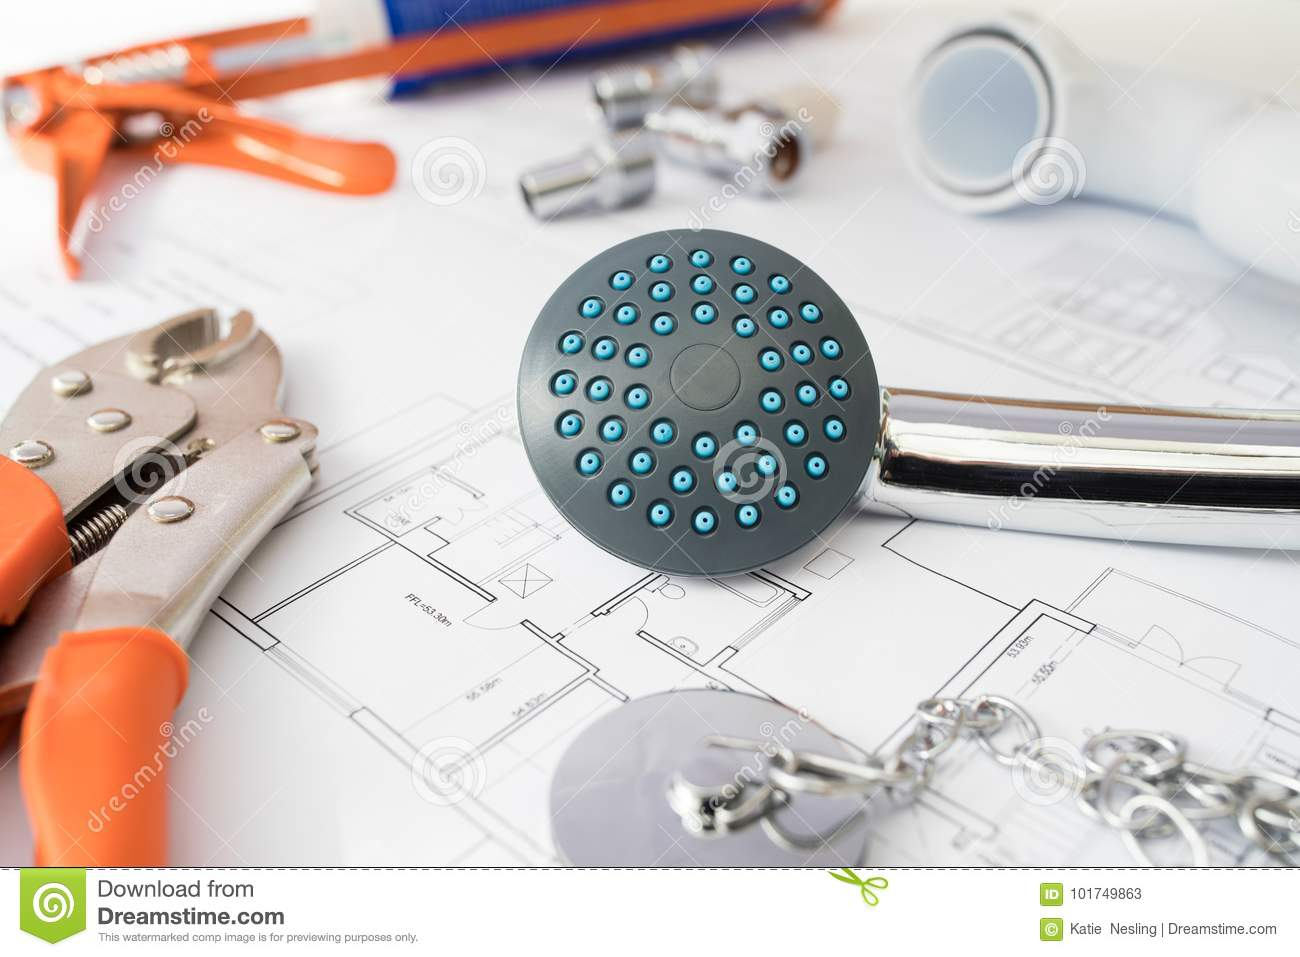 Plumbing Tools And Components Arranged On House Plans